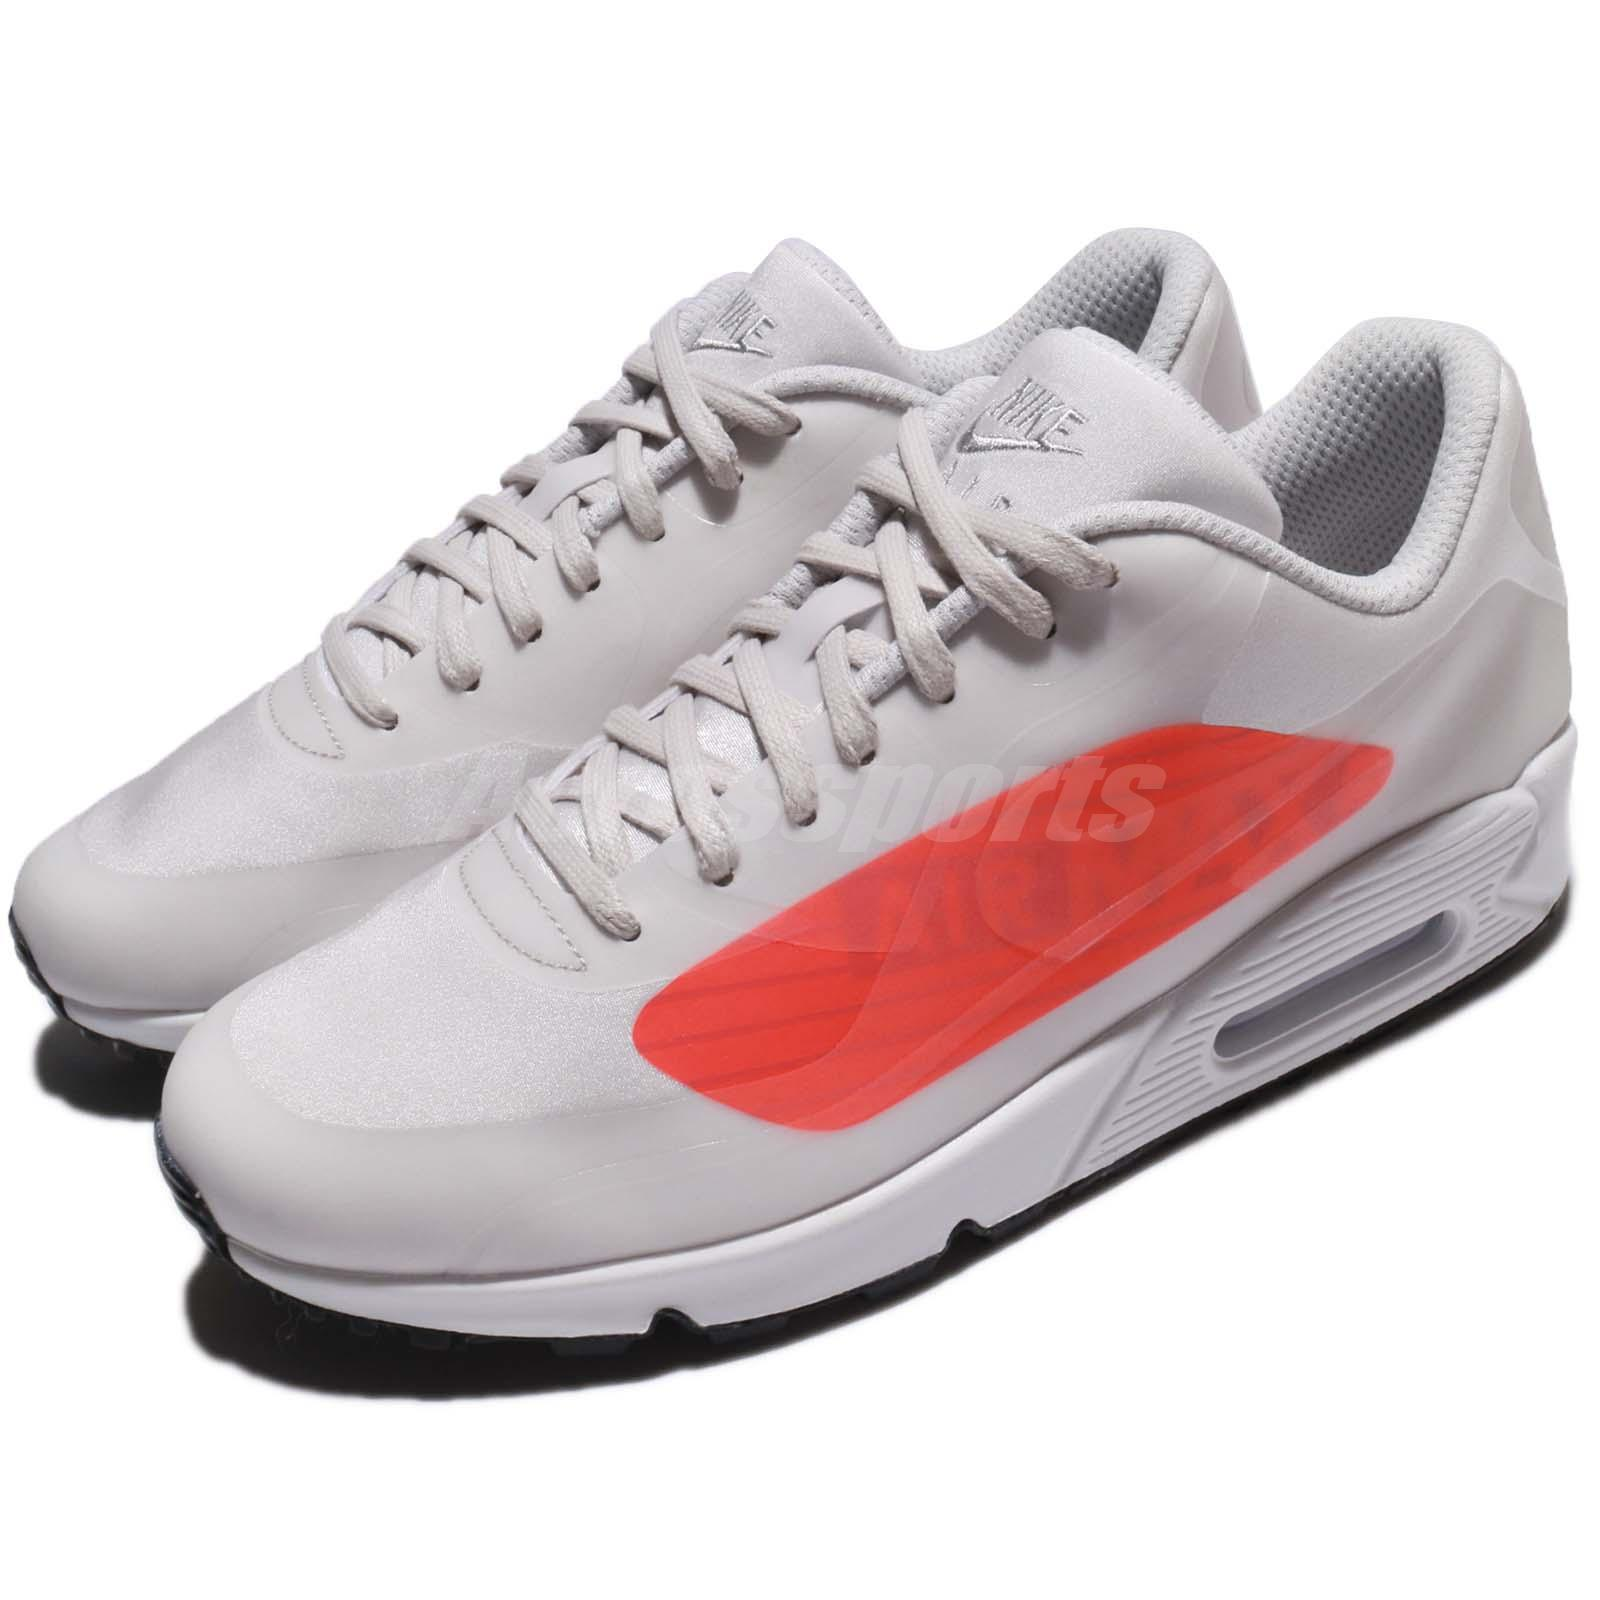 timeless design 24e0b 7d35d Details about Nike Air Max 90 NS GPX Neutral Grey Bright Crimson Big Logo  Men Shoes AJ7182-001